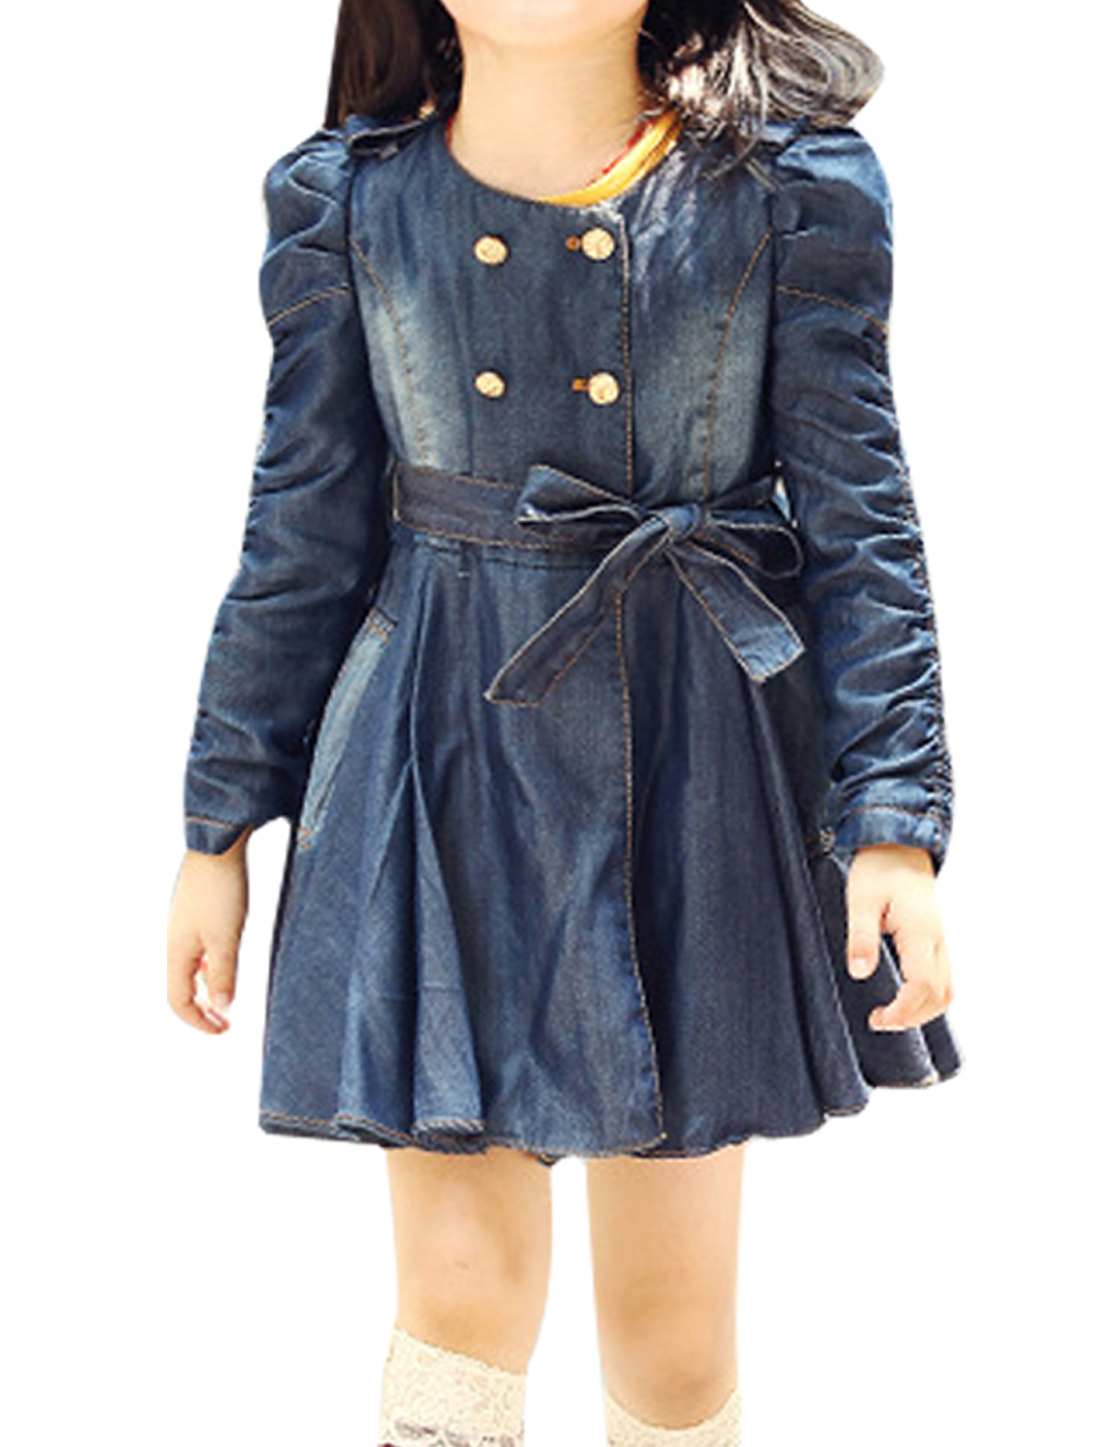 Double-Breasted Front Self-Bowtie Belted Navy Blue Denim Trench Coat for Girl 7